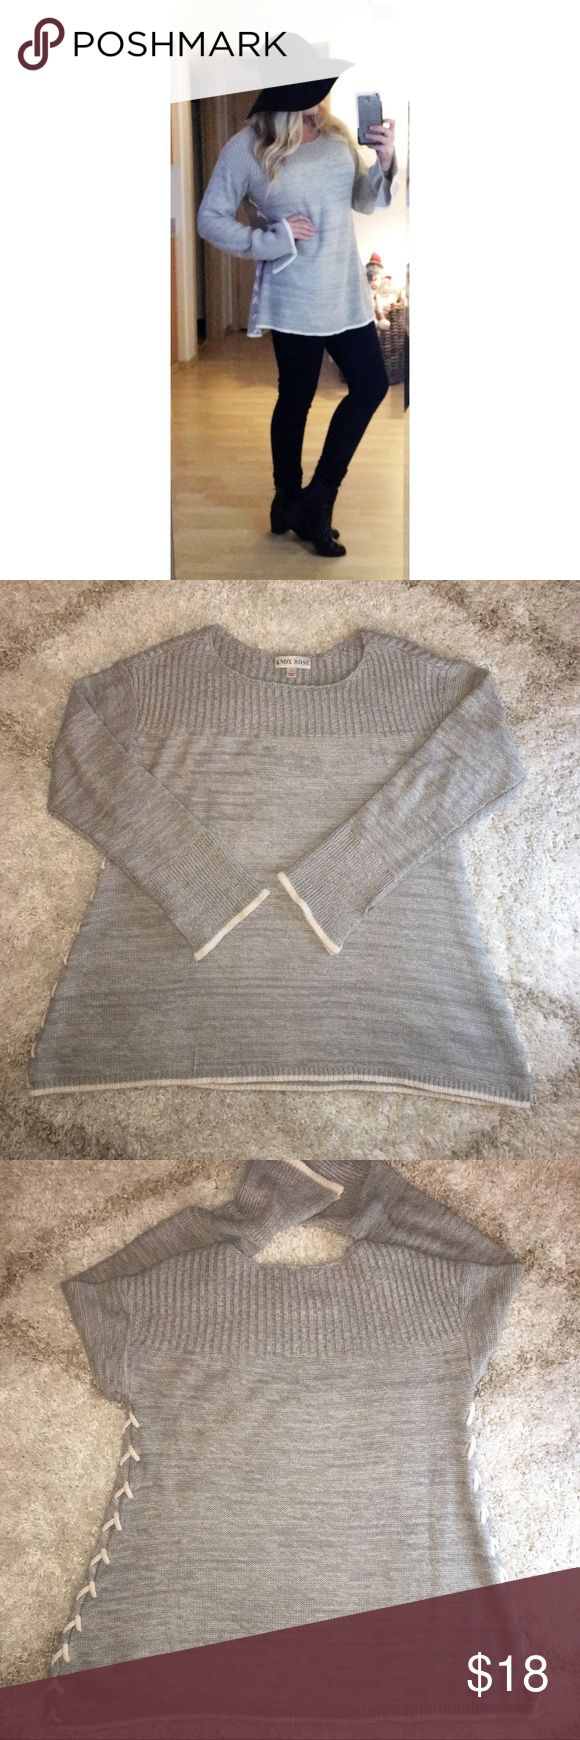 FL⚡️SH SALE!! ONE HOUR!! 🎉$16 to $12!! Knox Rose light gray sweater with cream chenille accents!! Stunning sweater and so flattering!! Looks great with leggings, tall stretch boots, skinny jeans or white skinny jeans. ❤️ So soft and no signs of wear! Gently worn. Pretty chenille criss cross up both sides, flared bell sleeve with slits and chenille edge. All around a stylish and beautiful sweater! Still available at Target for $30! Sz large, would fit US women's 10-14 depending on how…